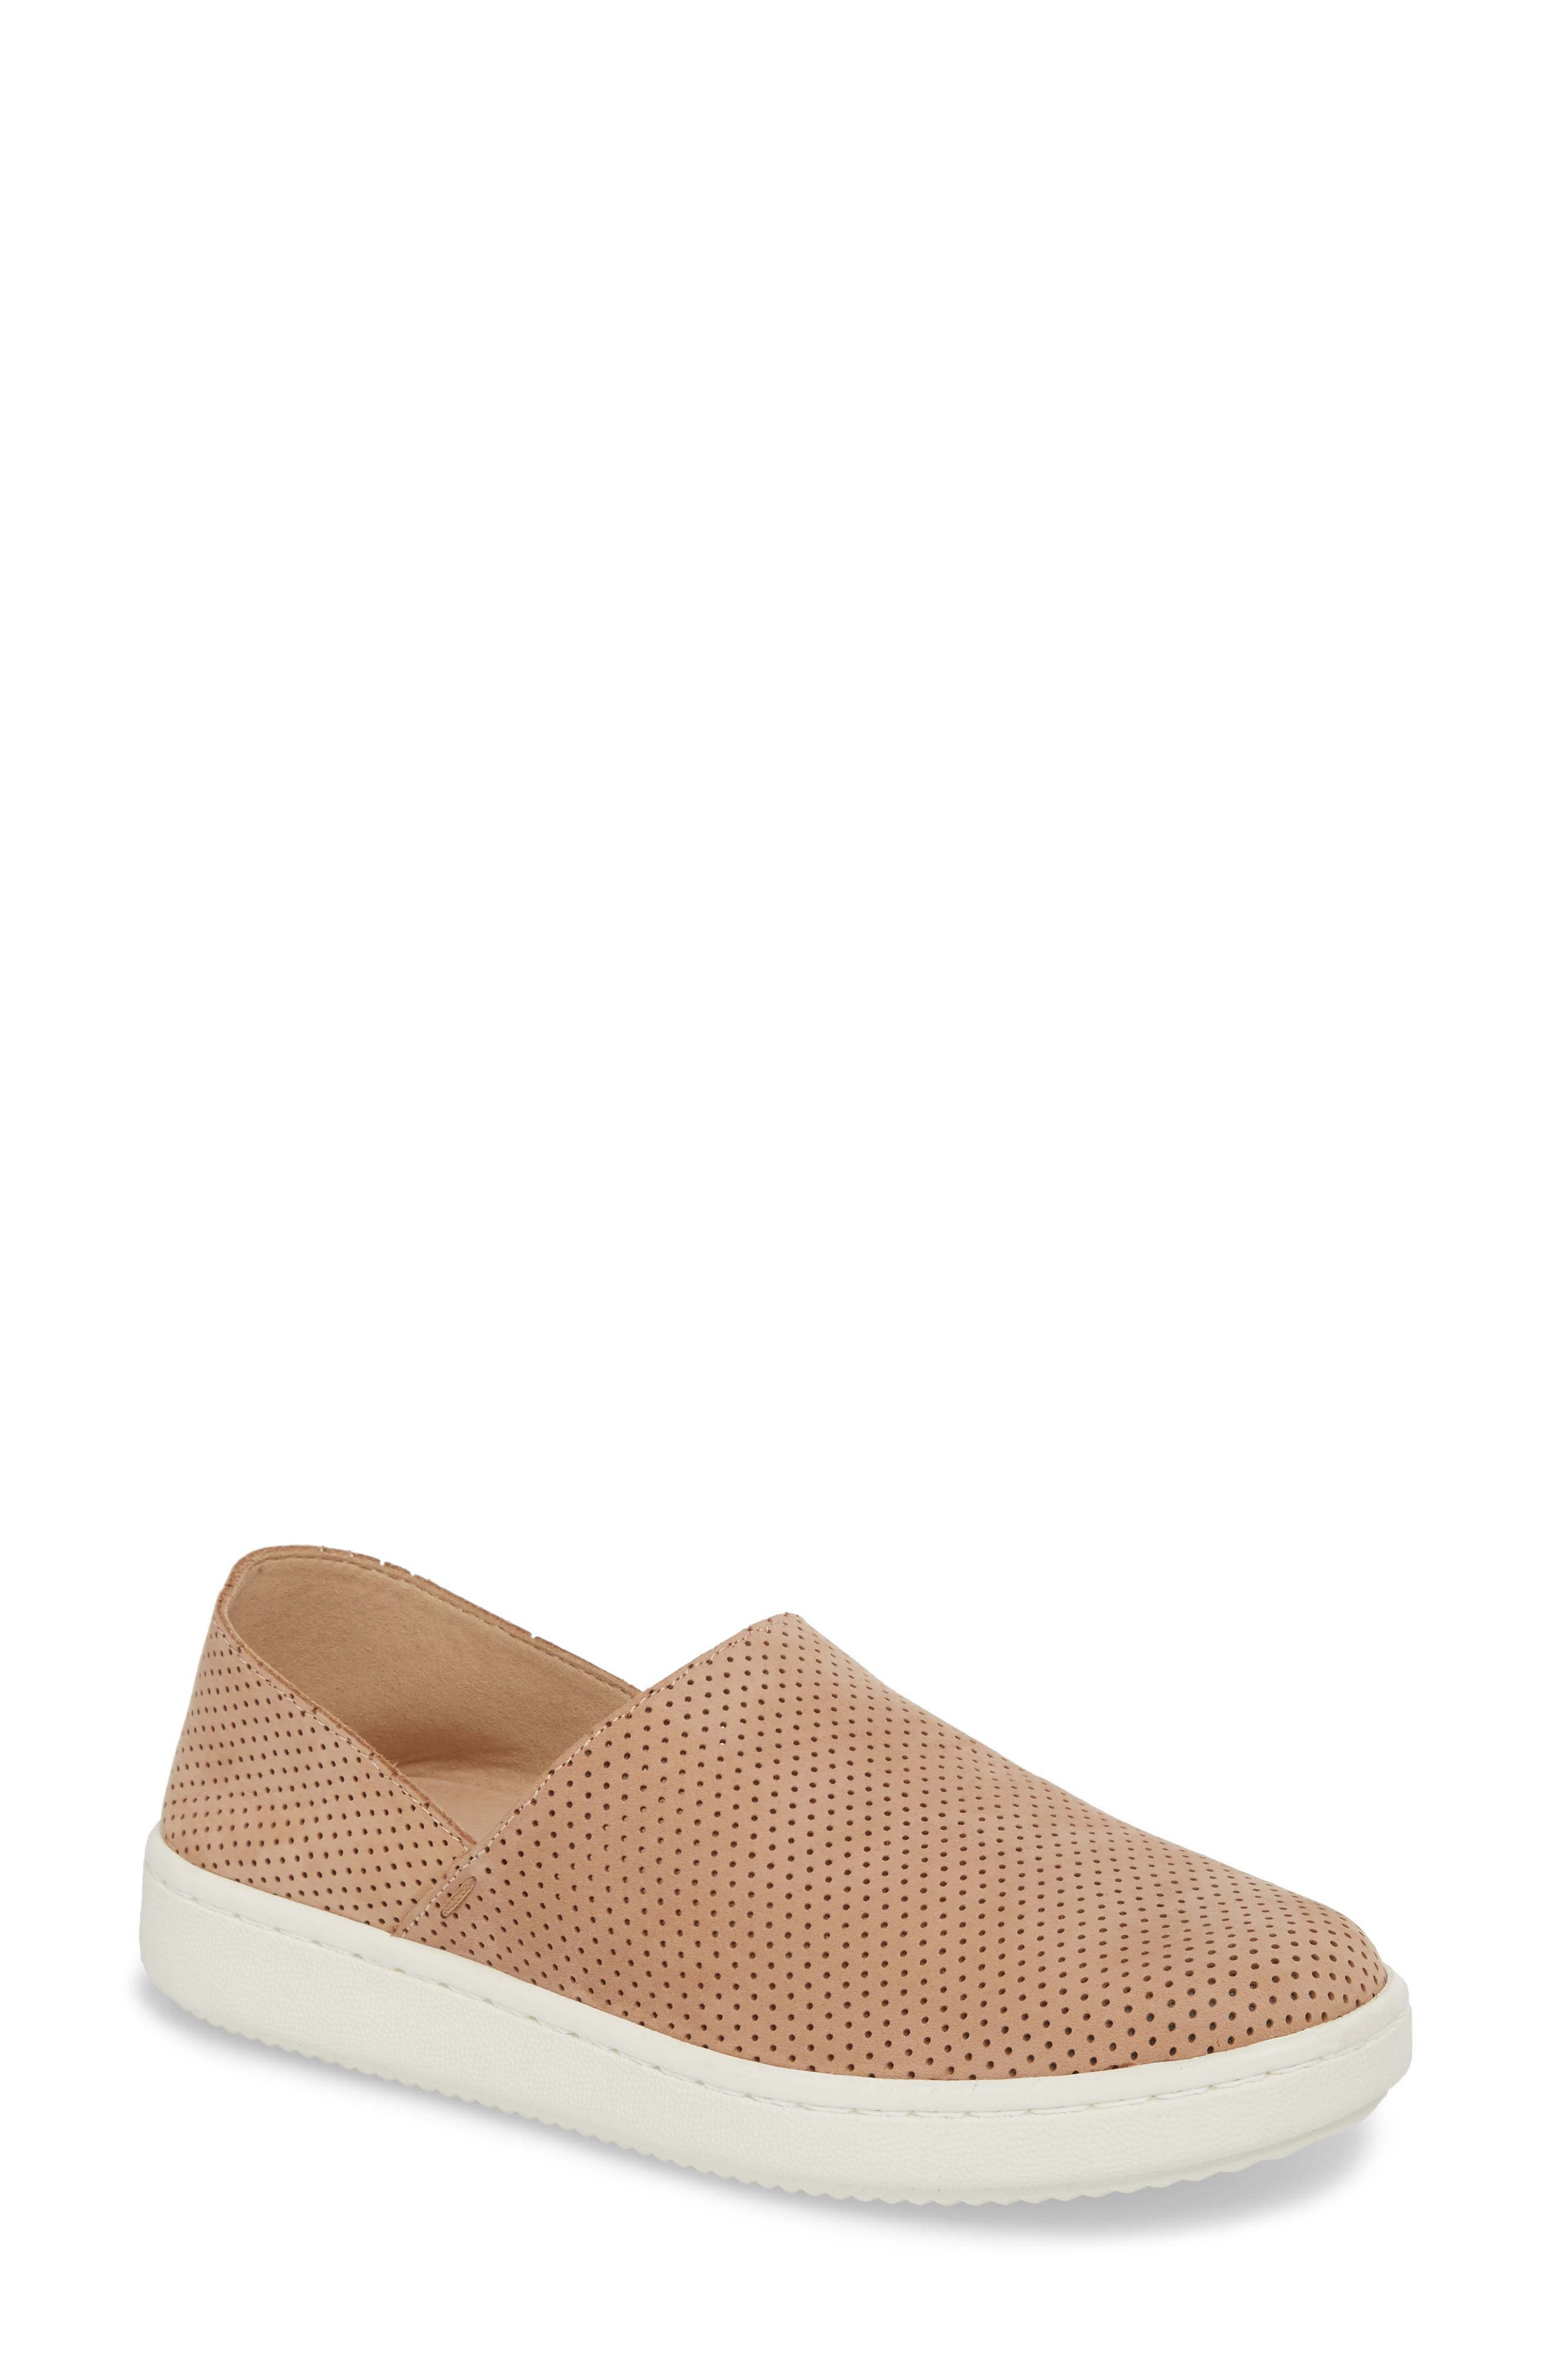 Main Image - Eileen Fisher Panda Perforated Slip-On Sneaker (Women)